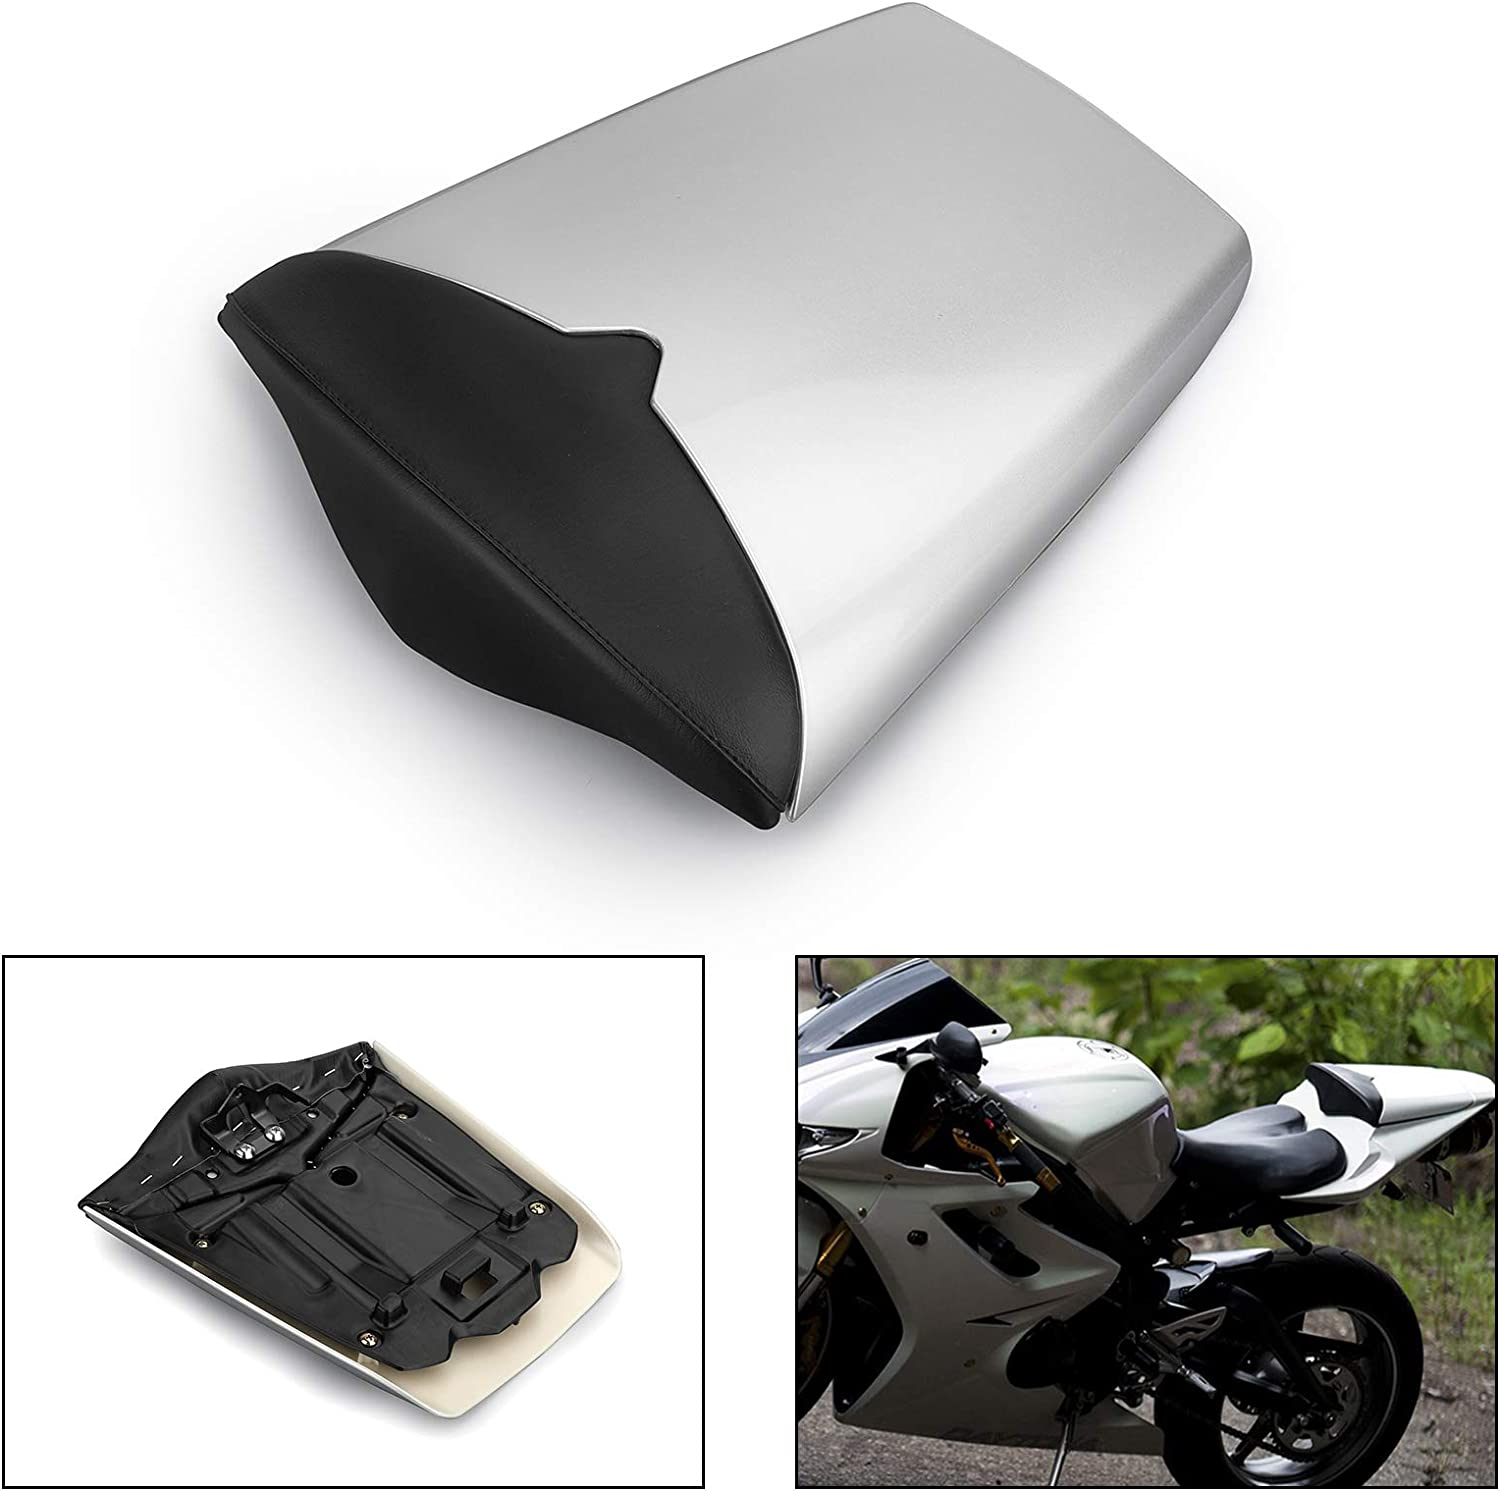 Artudatech Motorbike Rear Seat Cover Cowl Passenger Pillion Motorcycle Seat Cowl Fairing Tail Cover for Trium-ph Day-tona 675 2009 2010 2011 2012